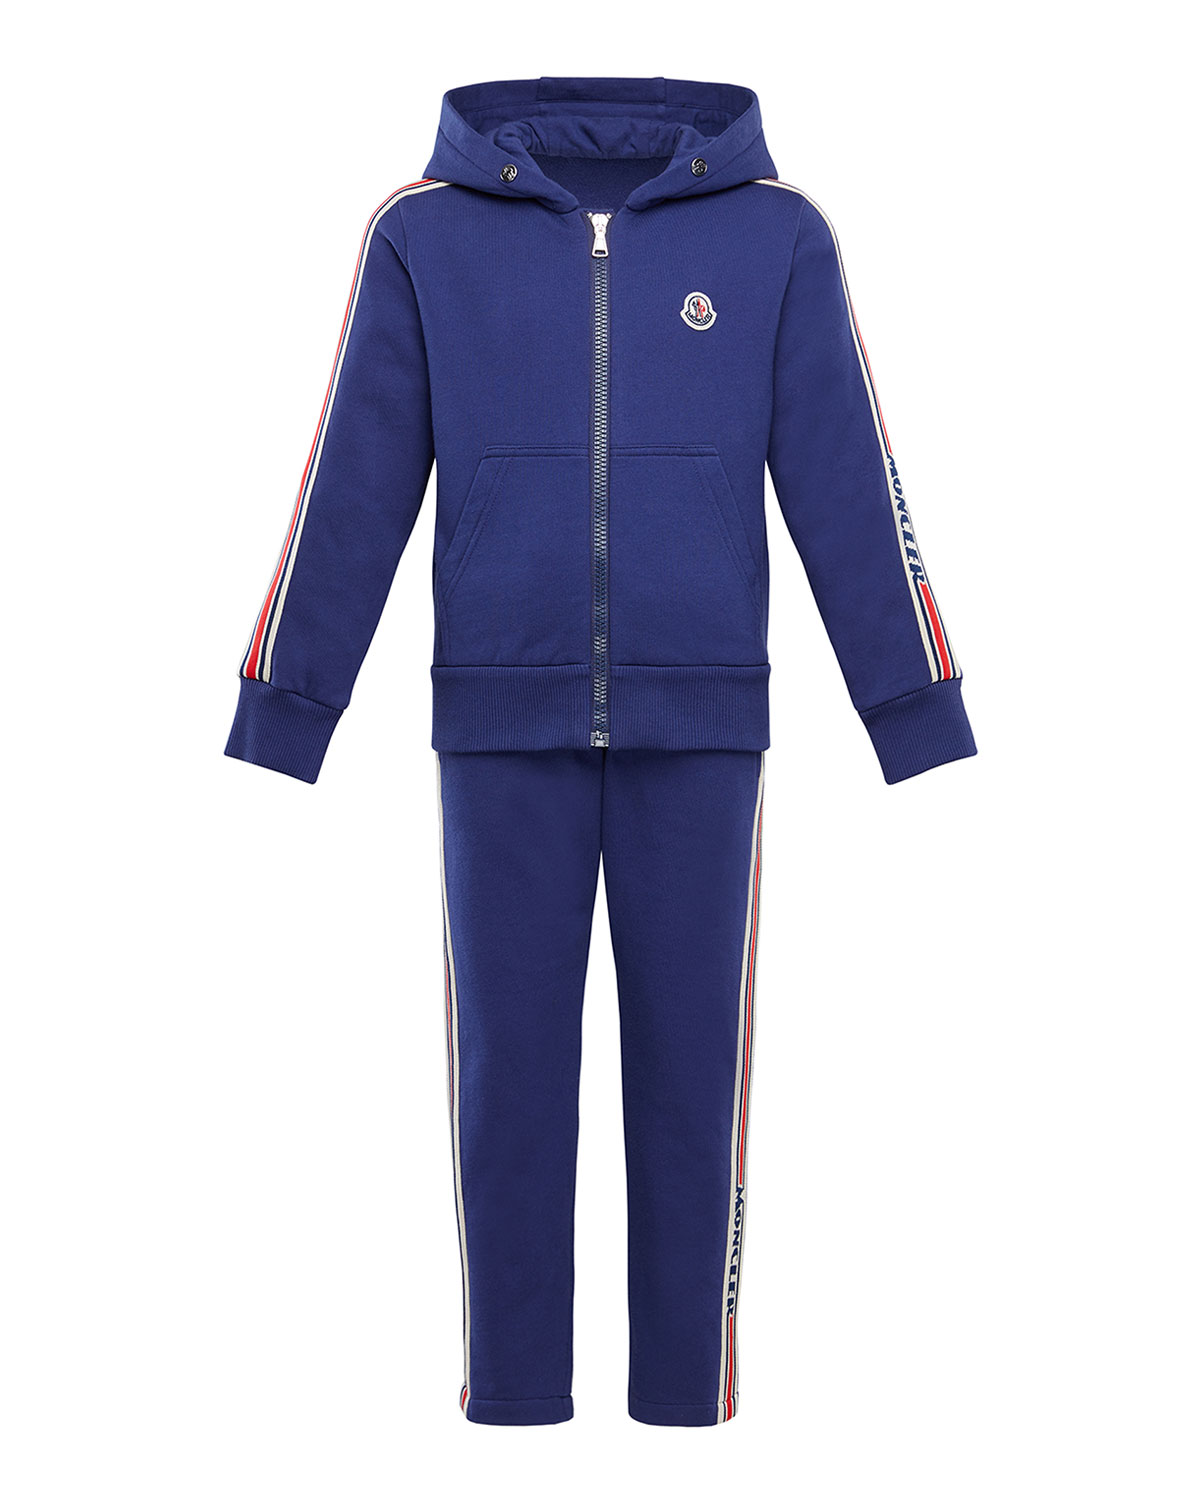 MONCLER BOY'S MOLLETON TWO-PIECE JOGGING SET W/ LOGO TAPING